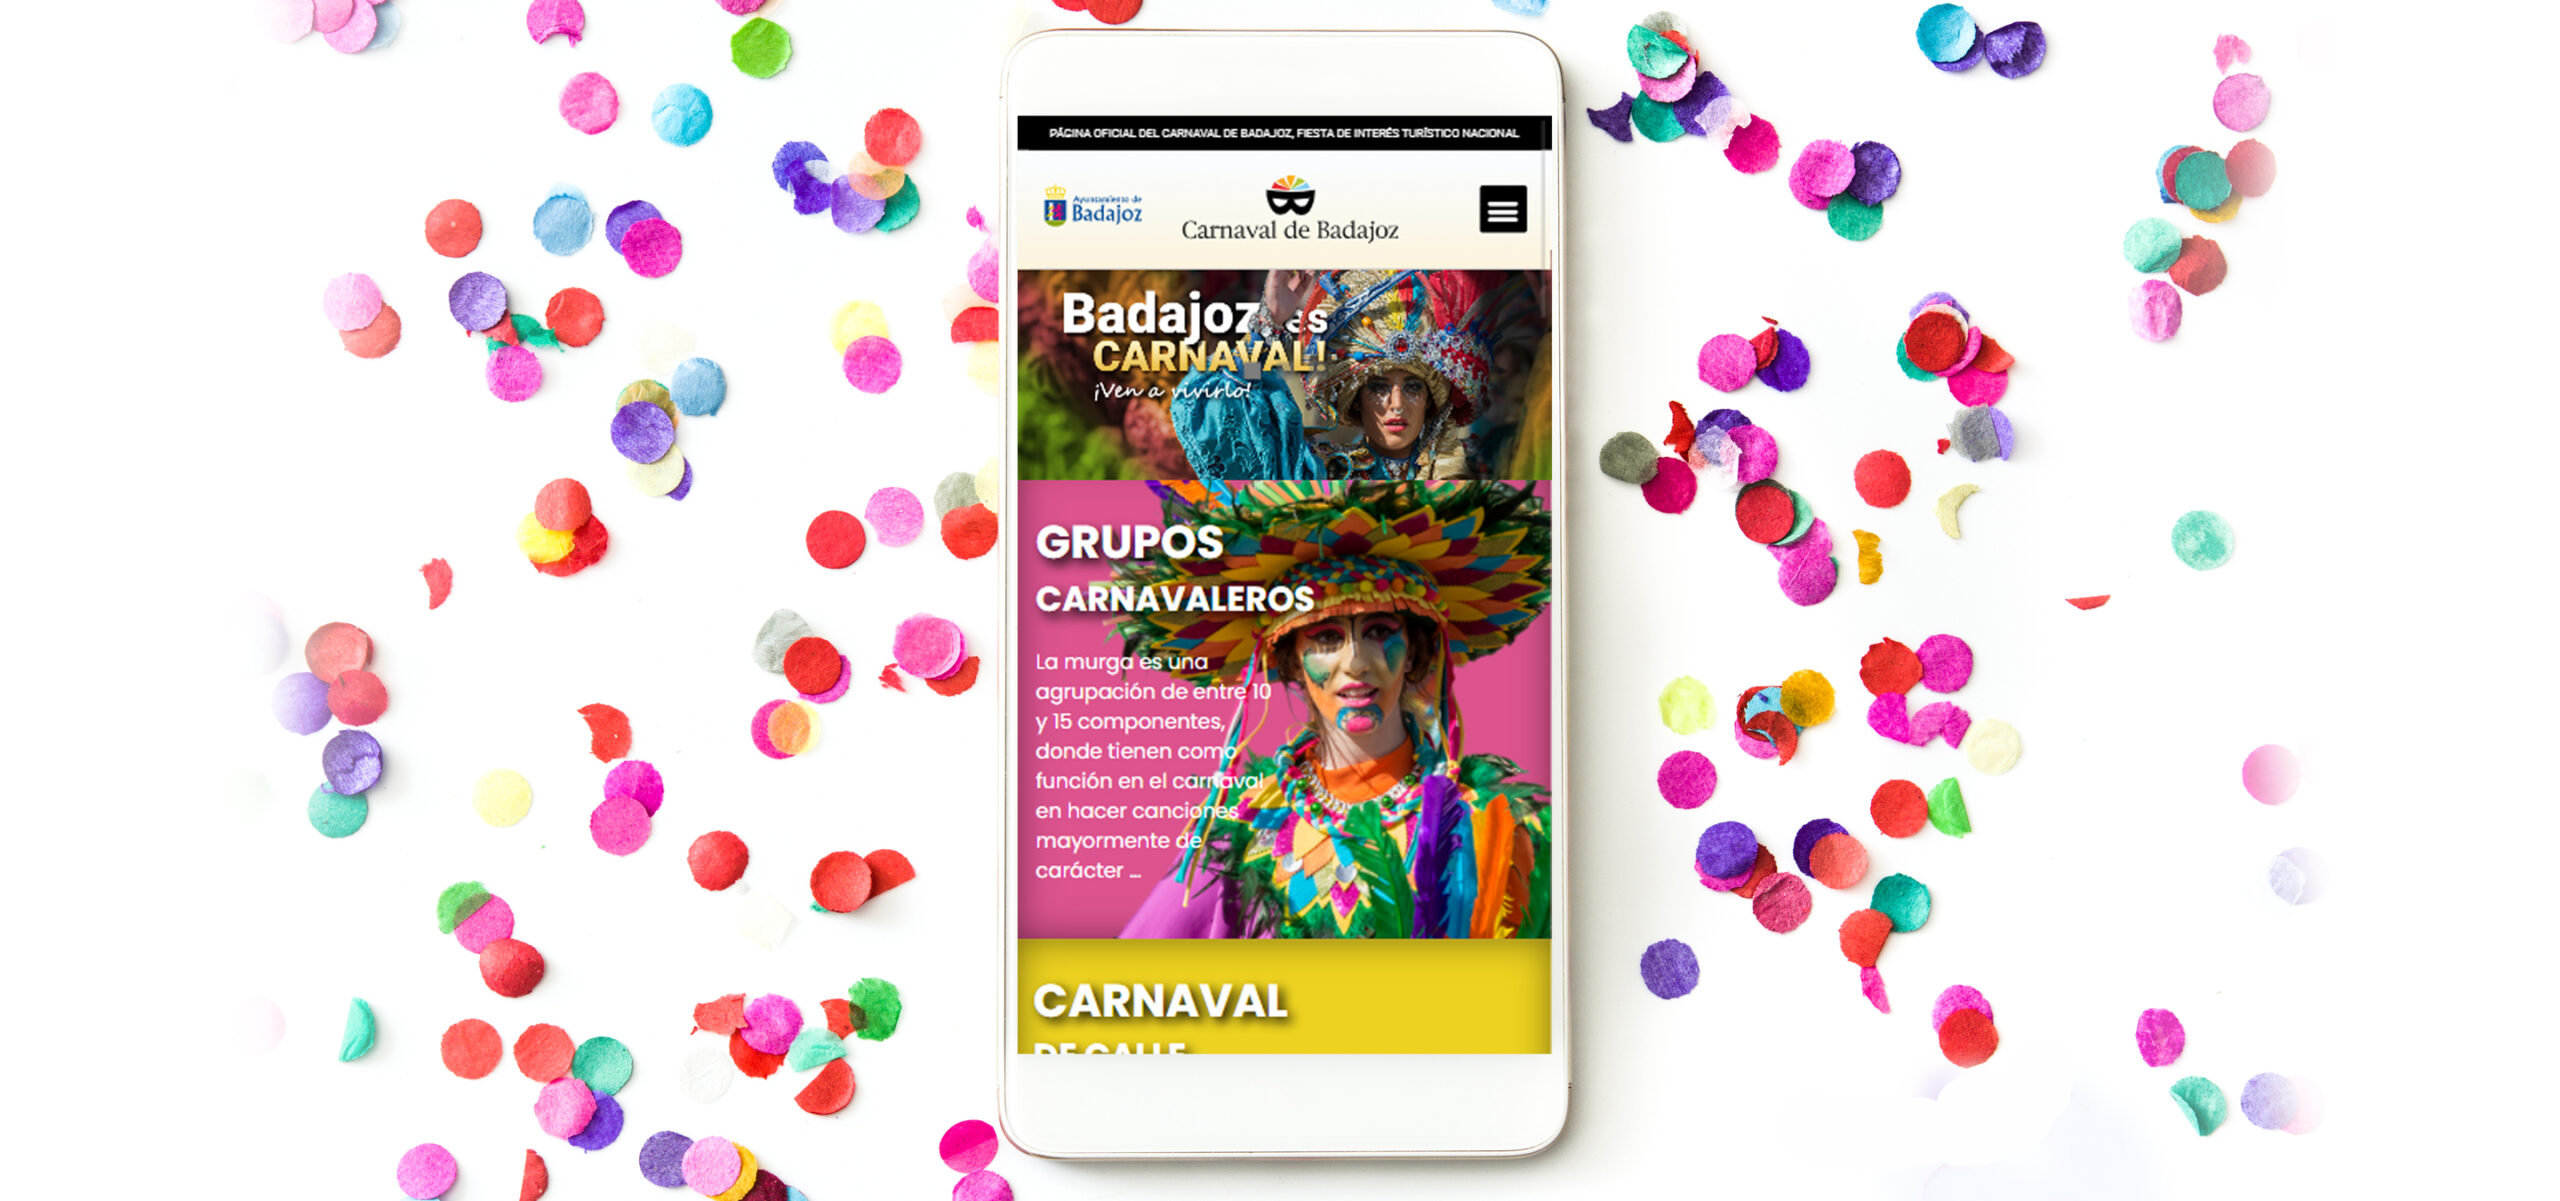 New official website of the Badajoz Carnival